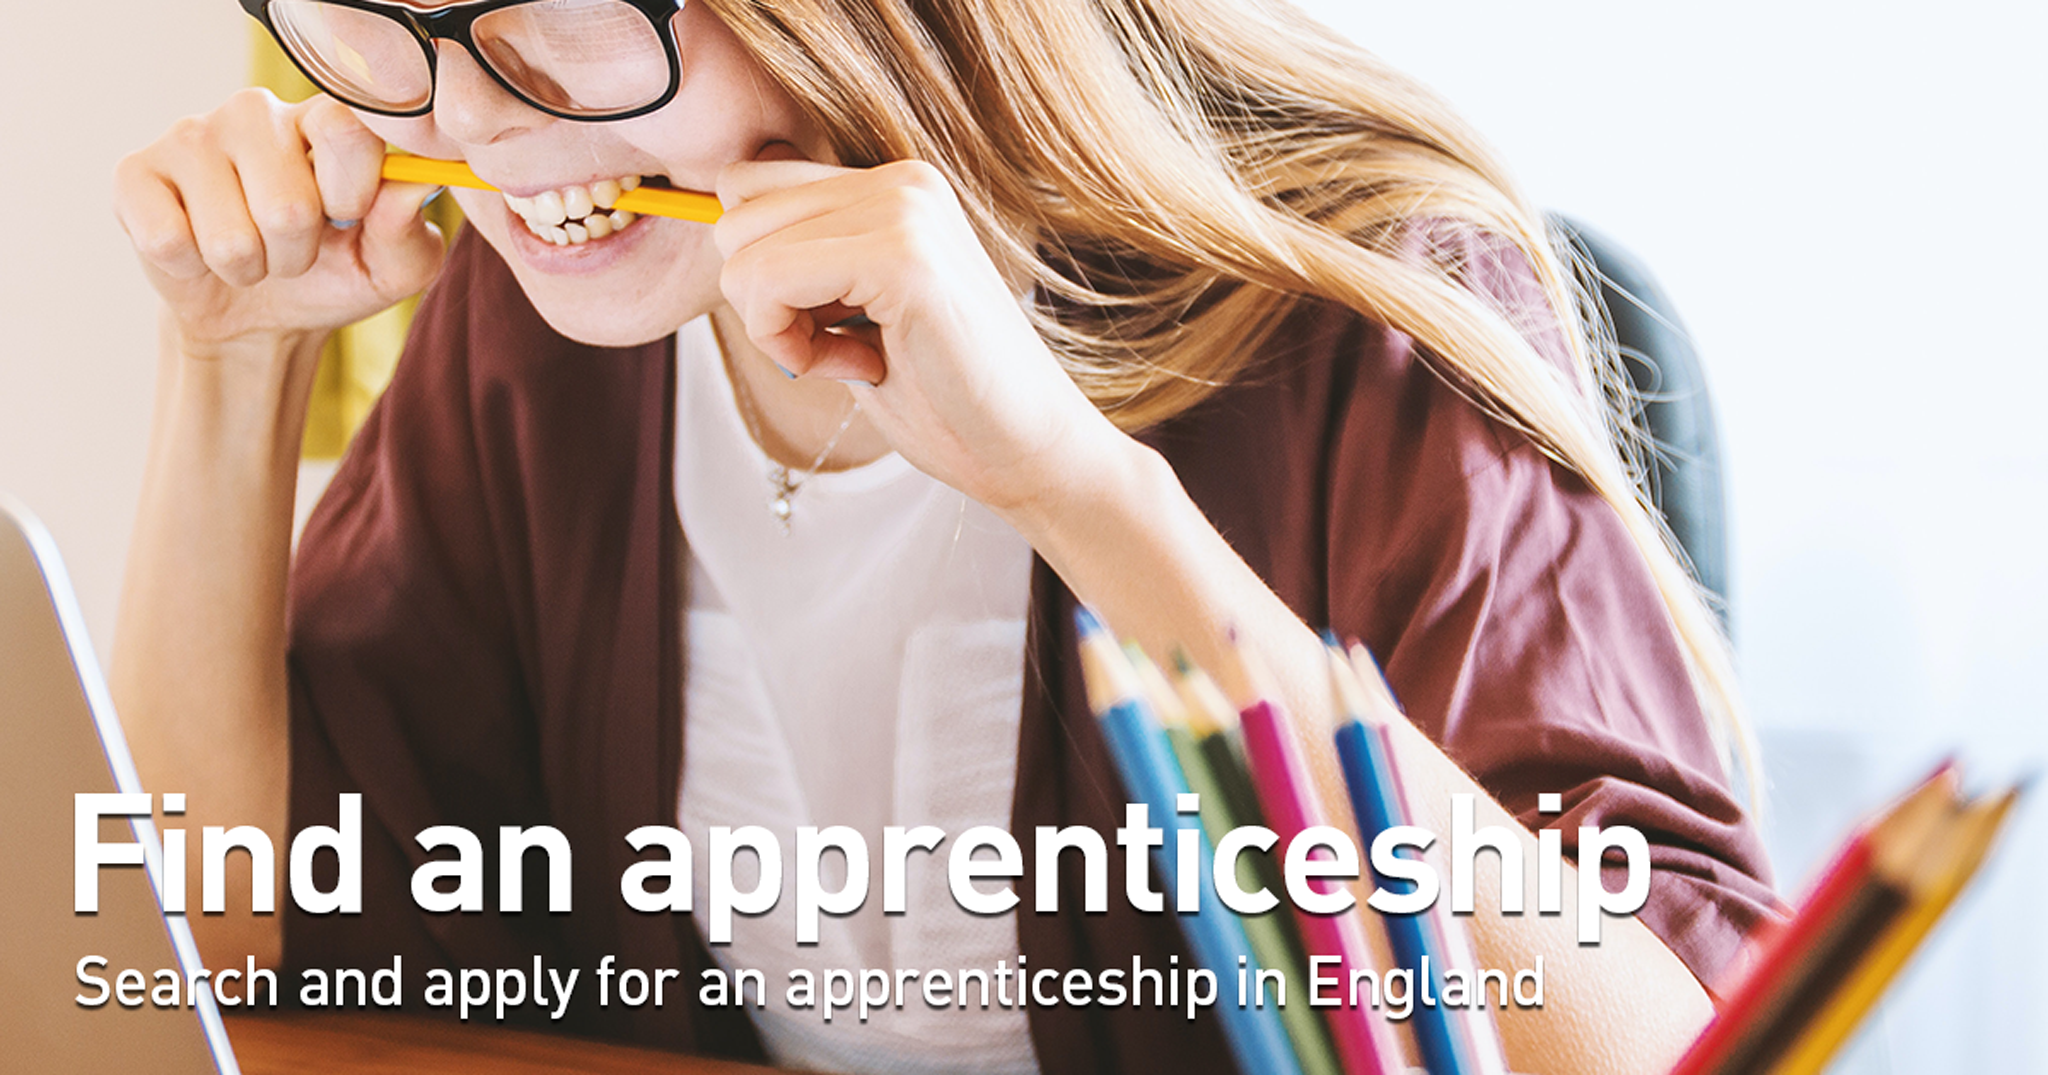 Search and apply for an apprenticeship in England